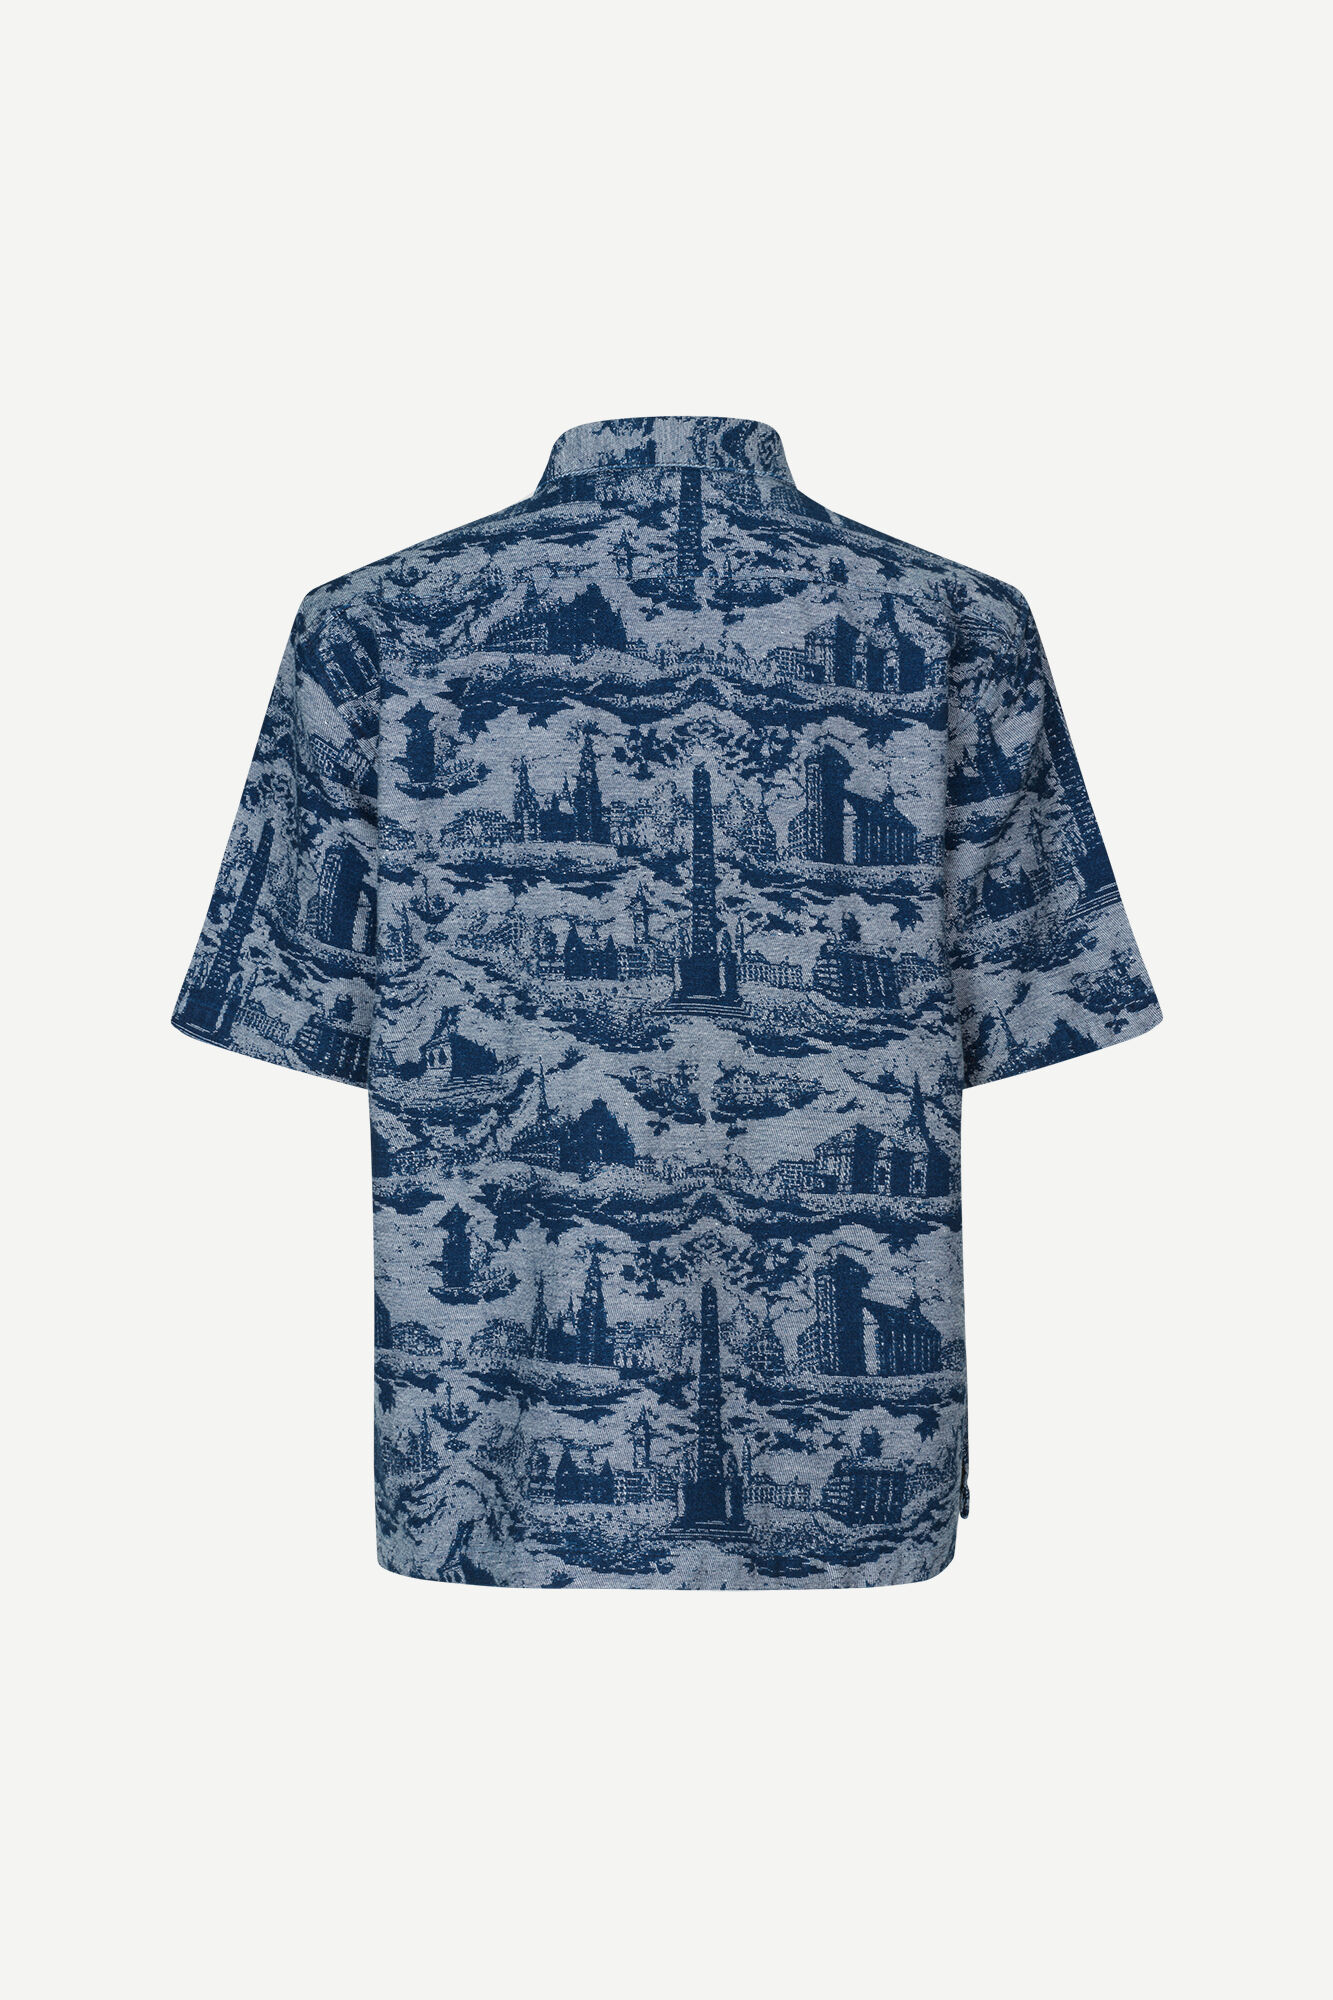 Ayo P Shirt 13144, SKY CITY OF TOWERS